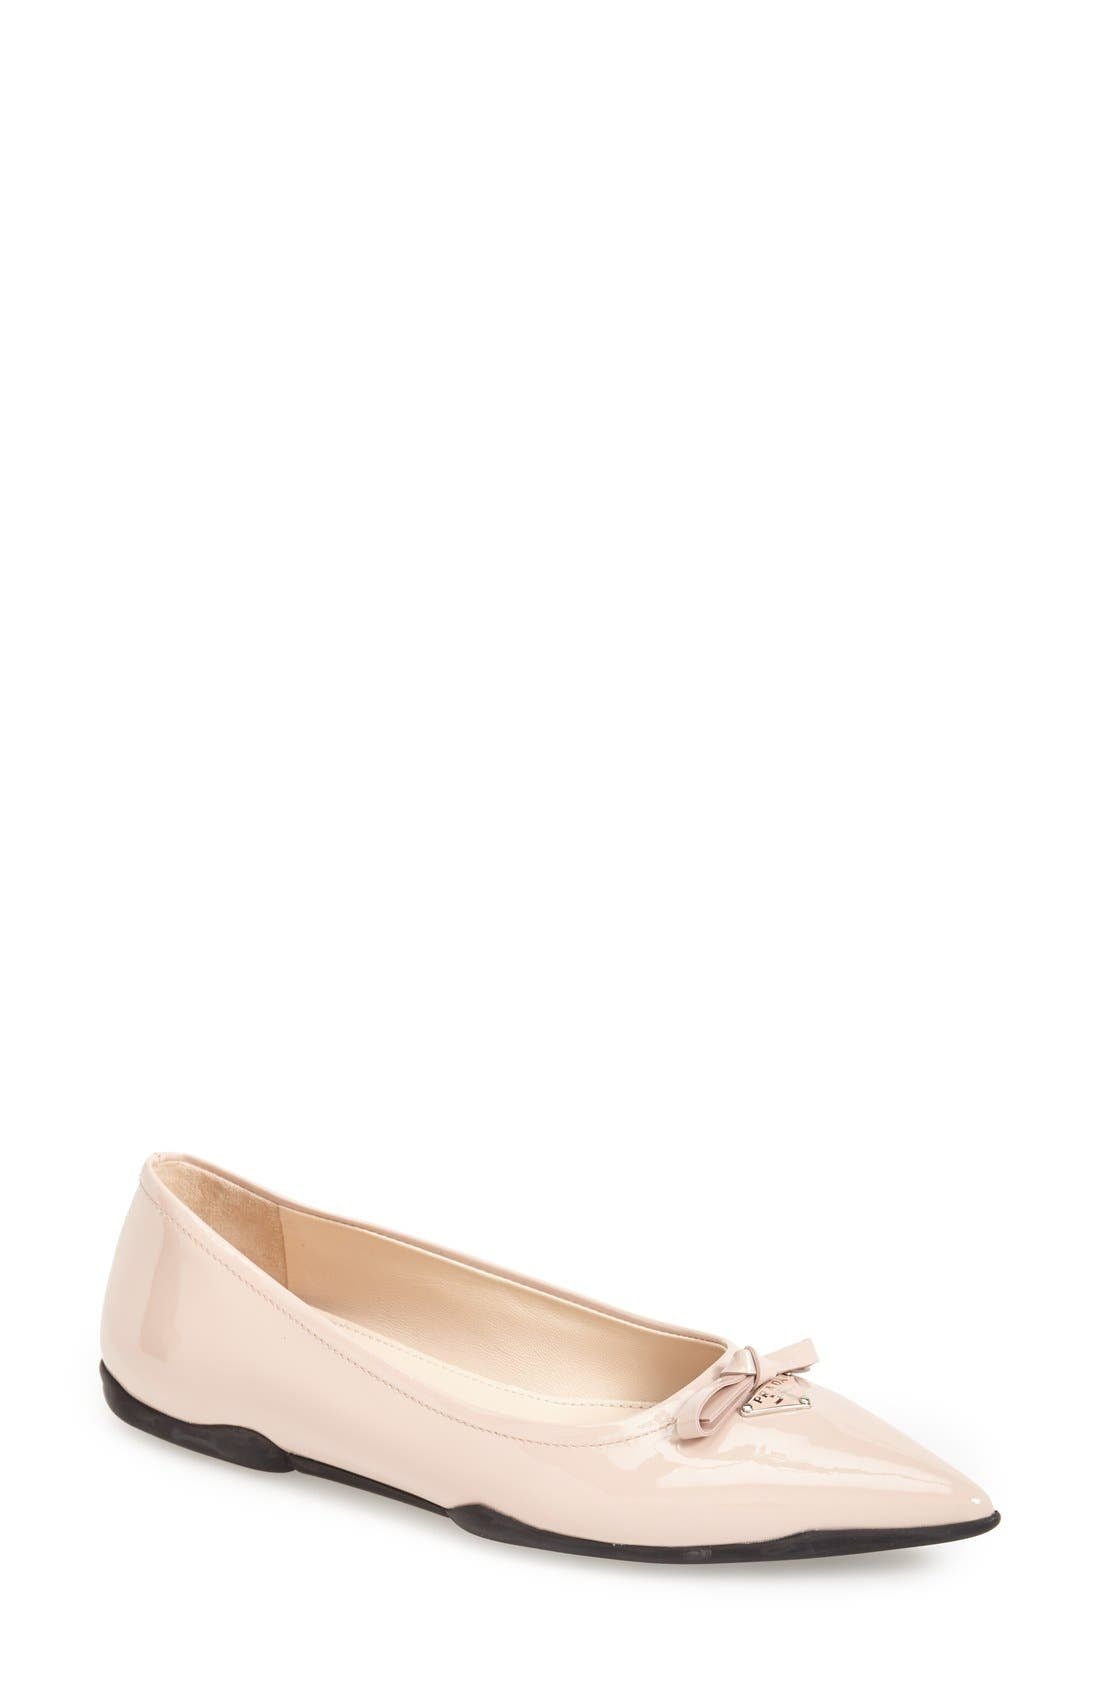 Alternate Image 1 Selected - Prada Pointy Toe Flat (Women)